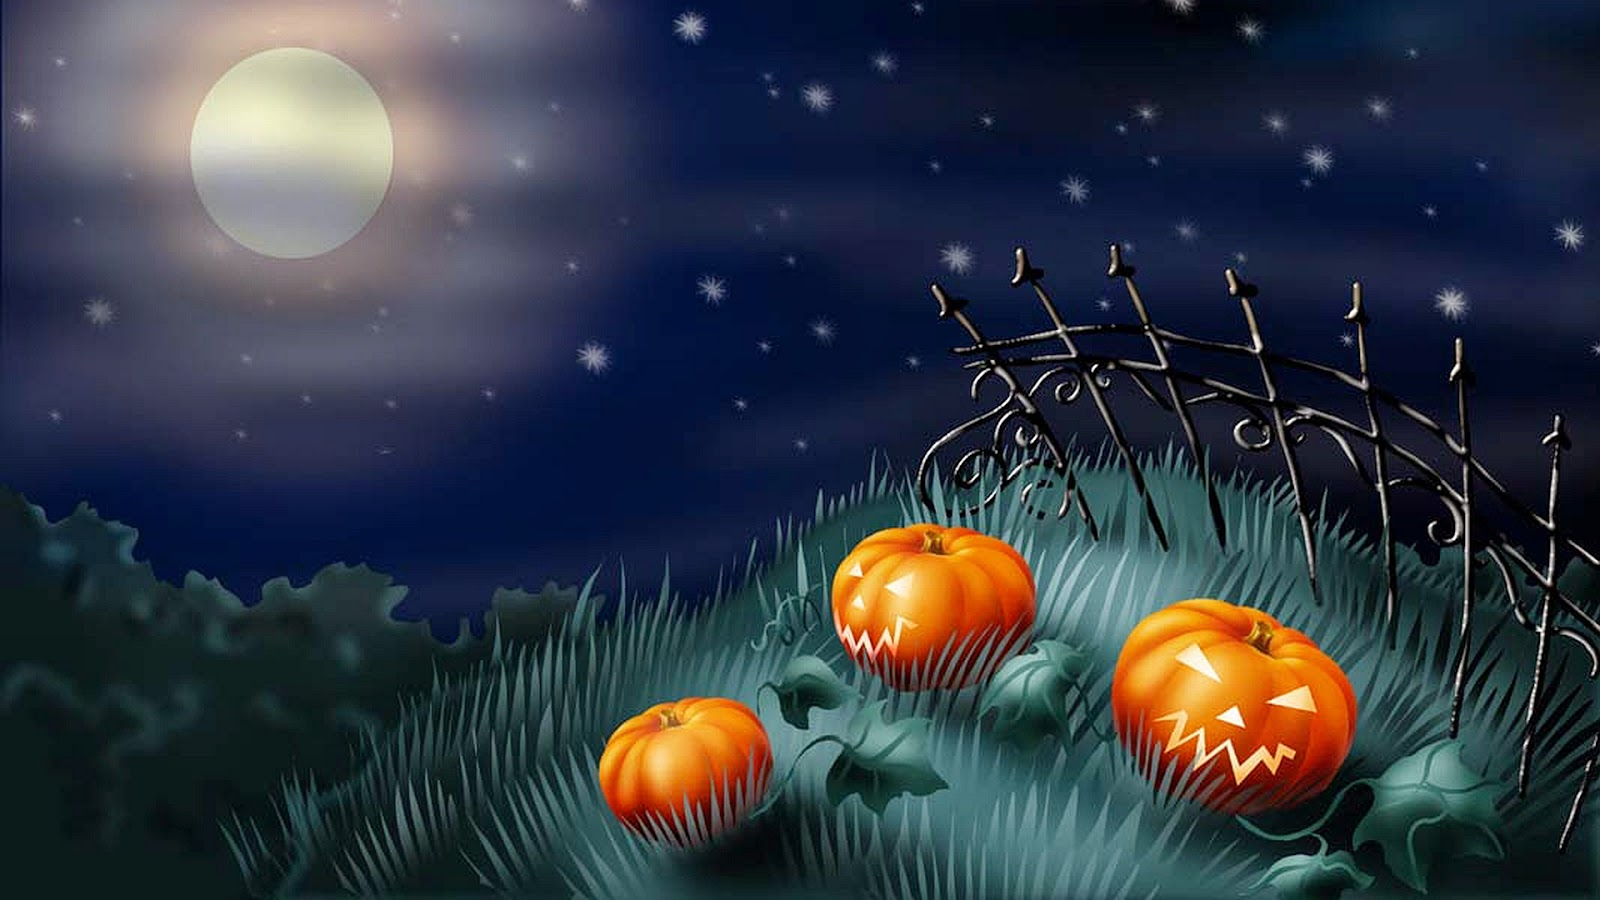 Happy Halloween 2014 - Beautiful wallpapers collection 2014